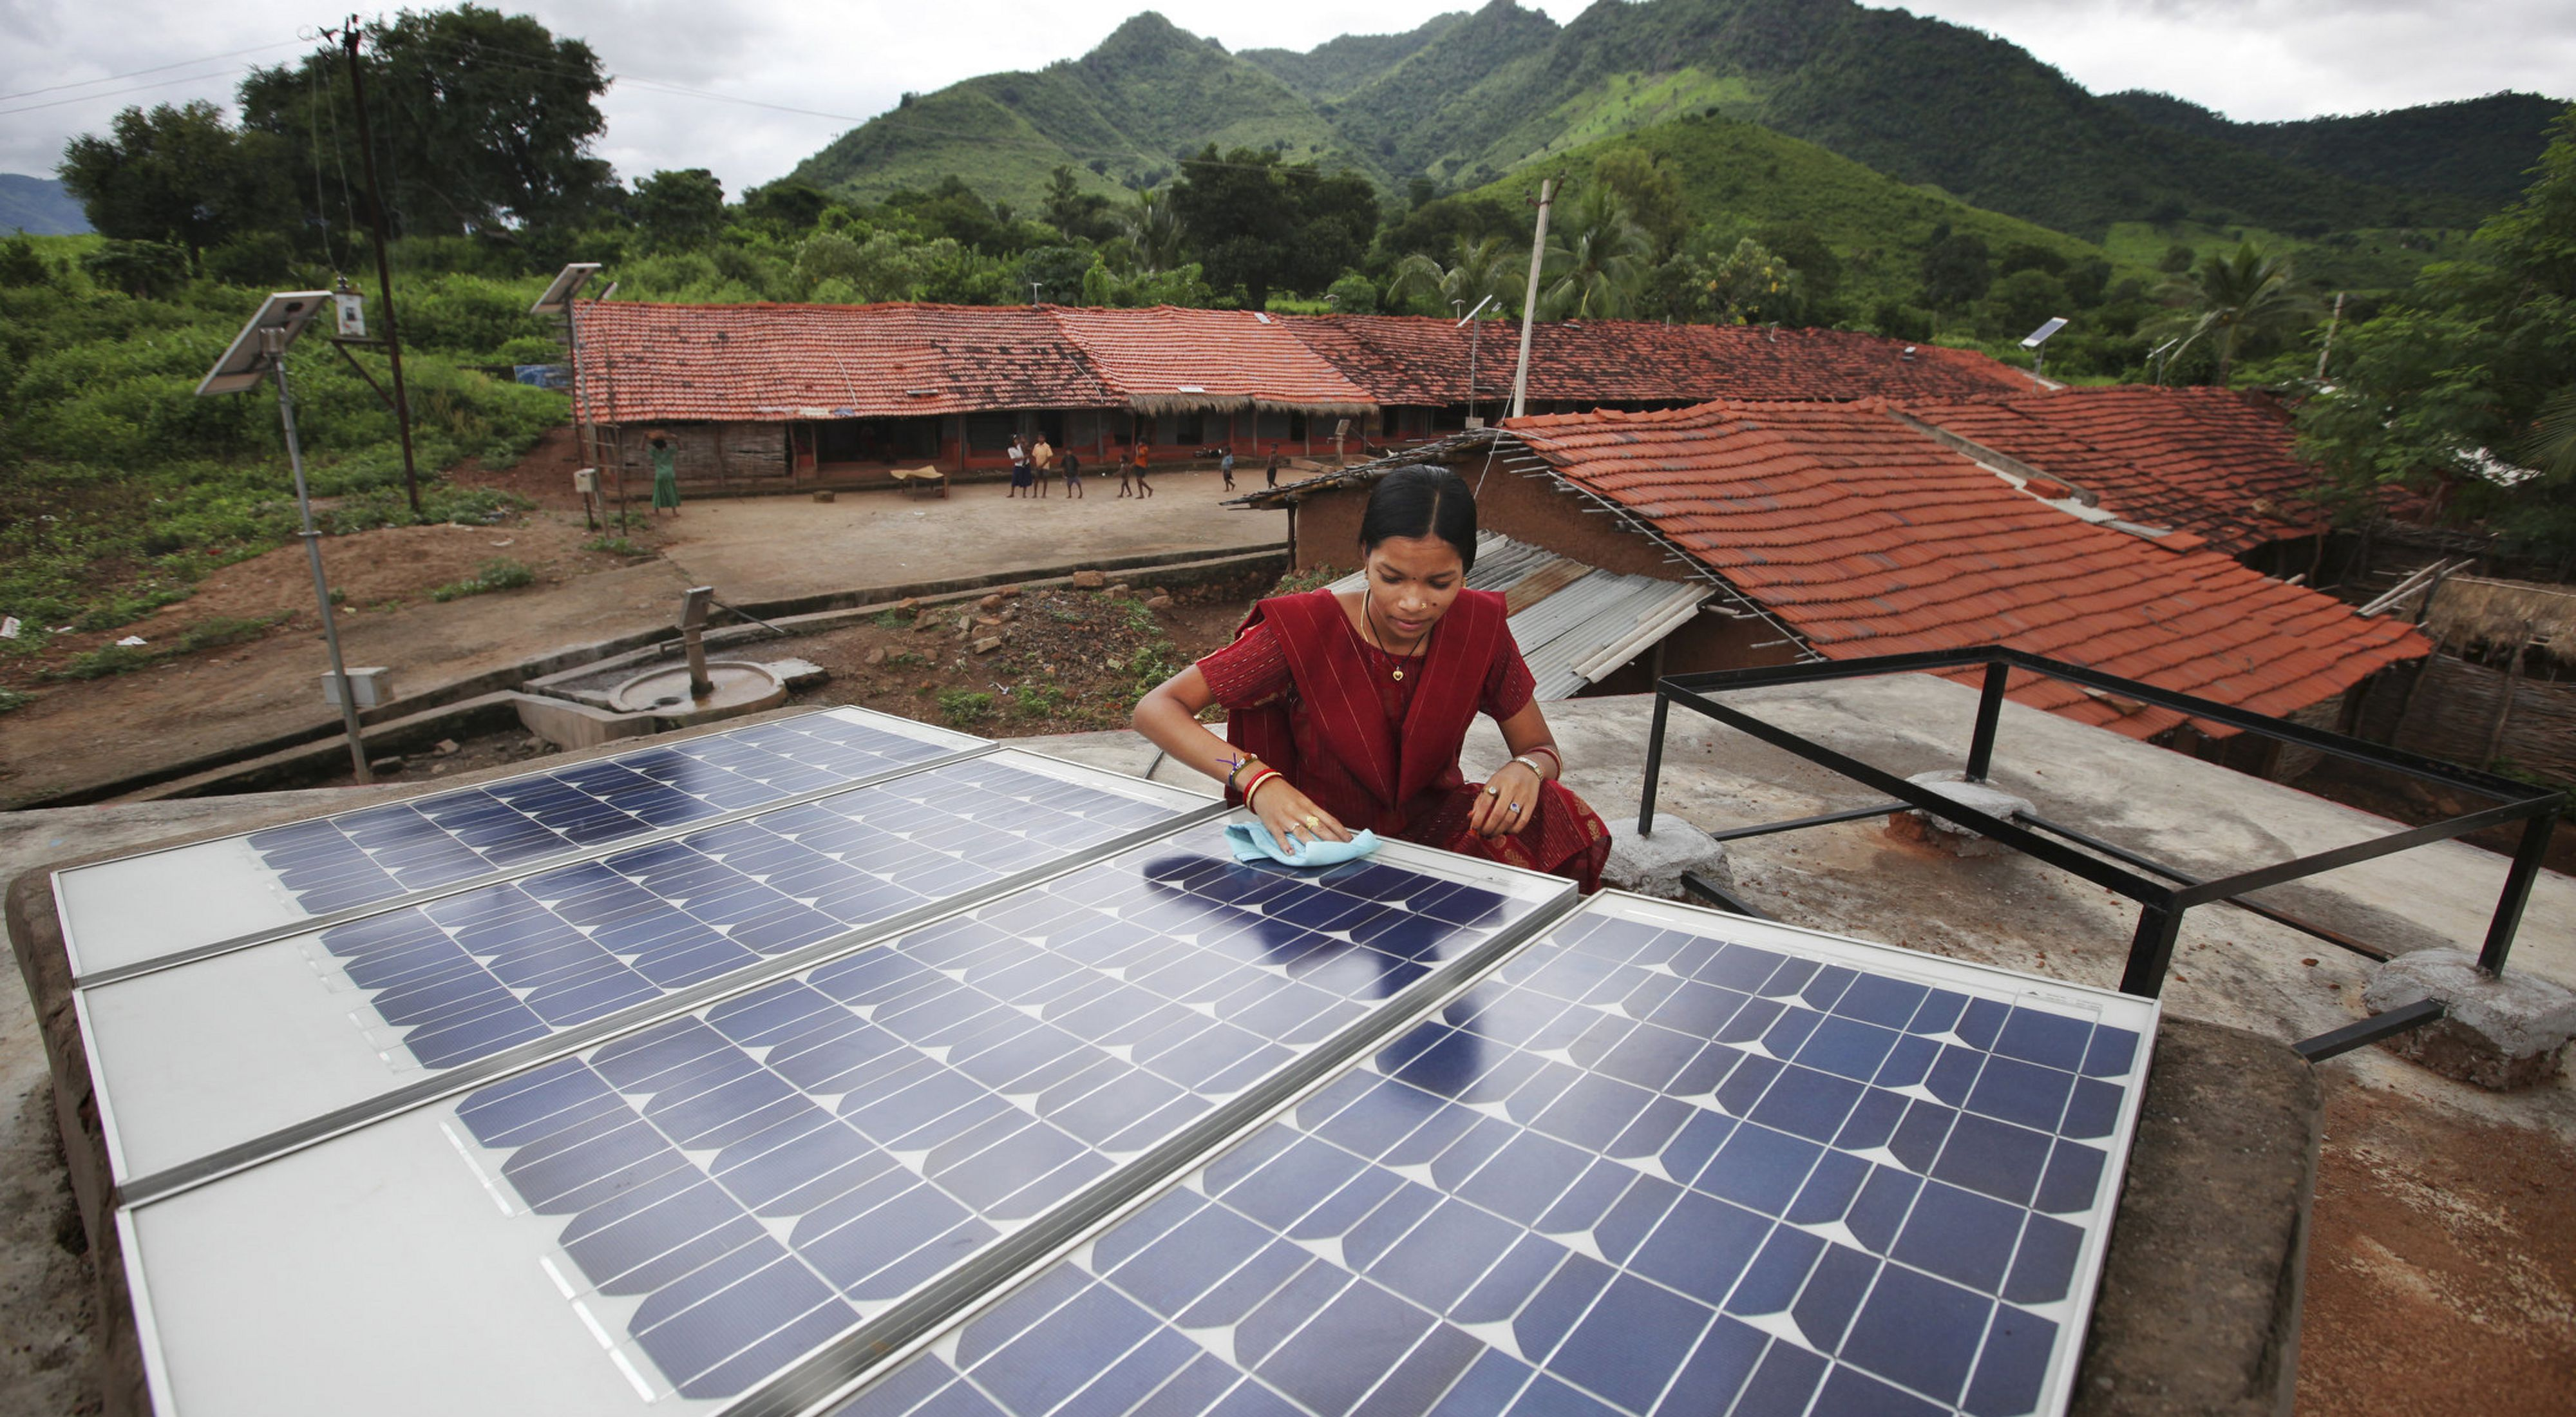 A person uses a cloth to clean solar panels on the roof of a village home in India.